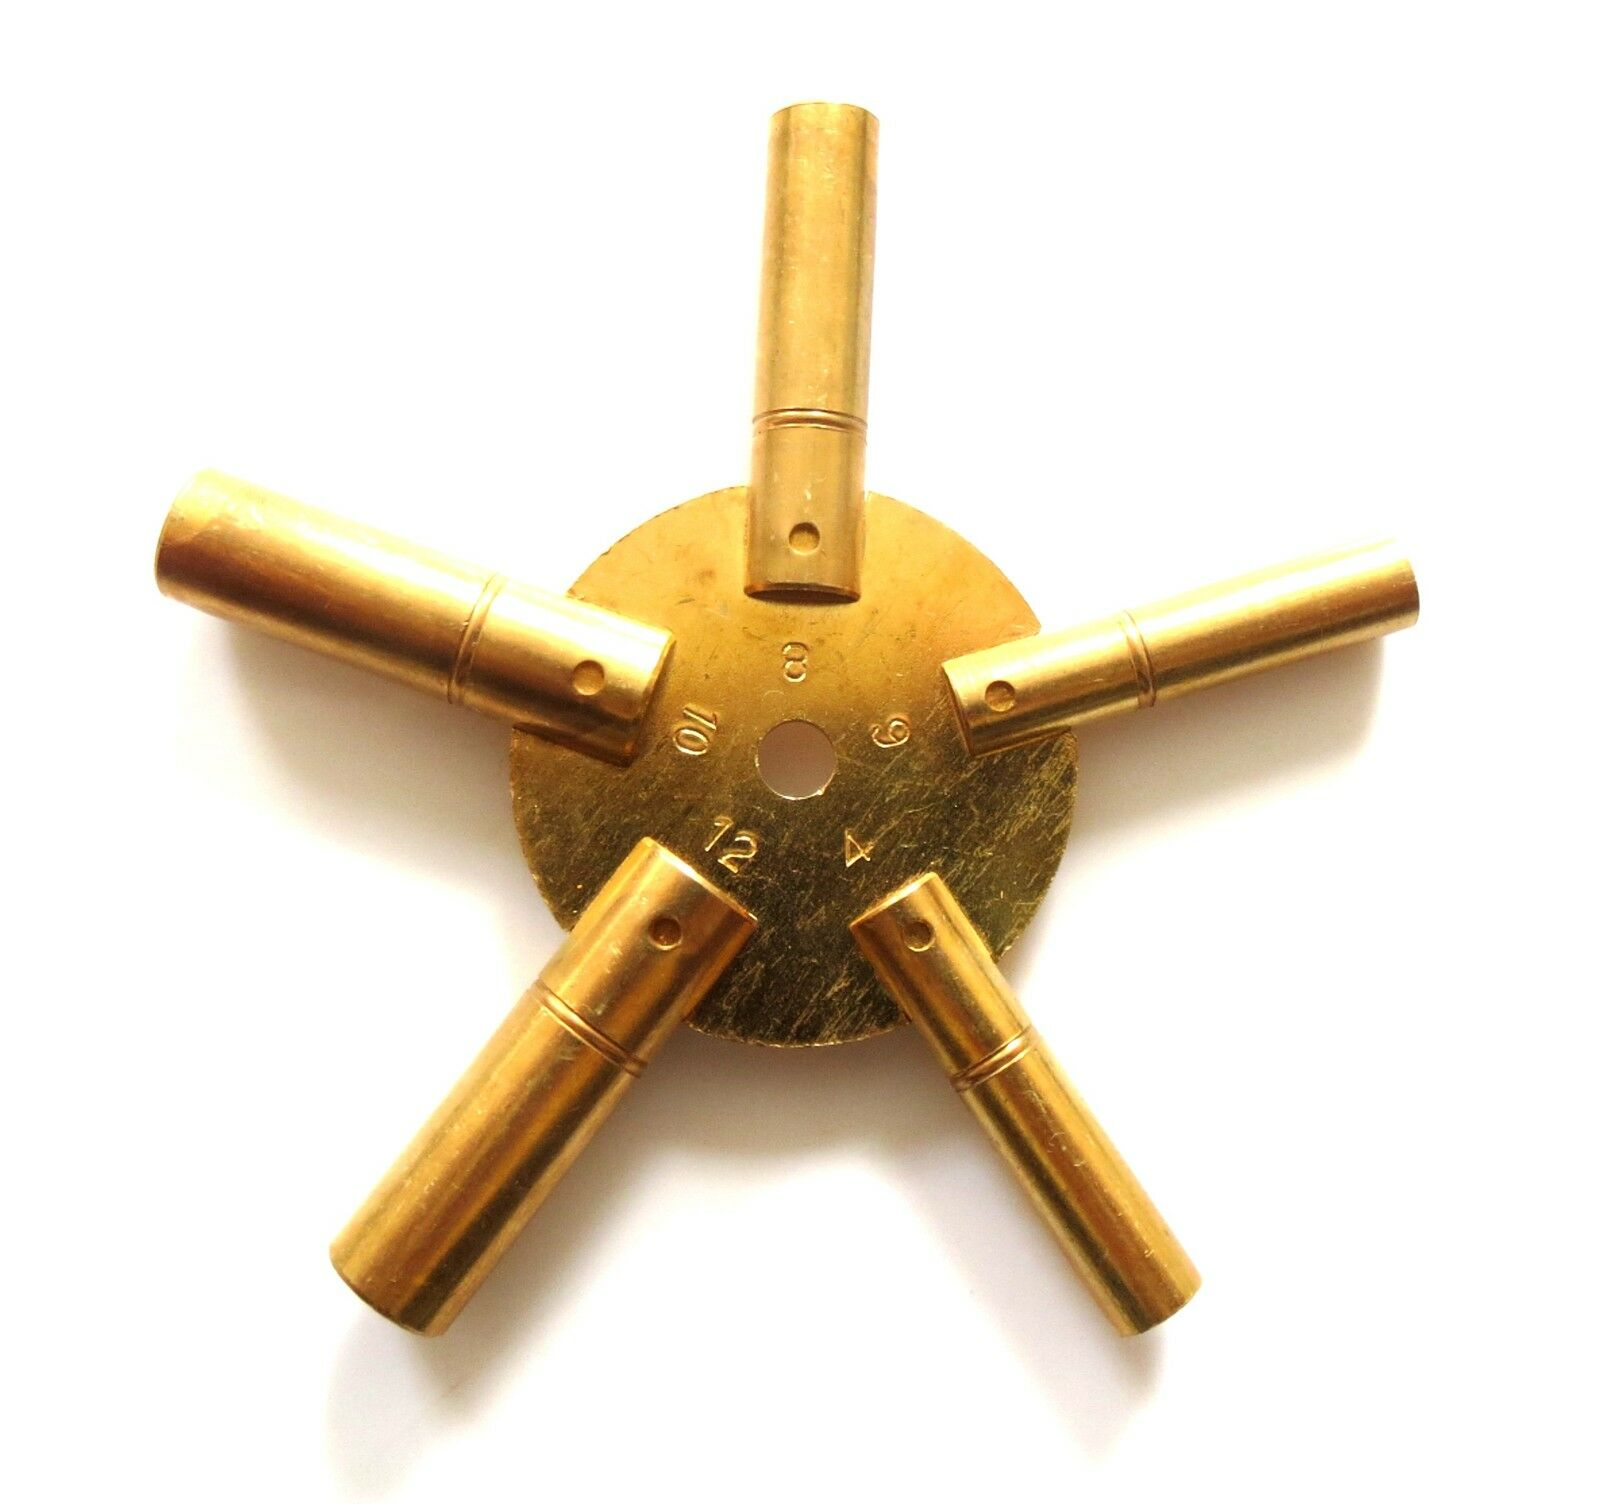 Brass Star Spider Clock Spring Winder Winding Keys Size 4,6,8,10,12 For Workshop